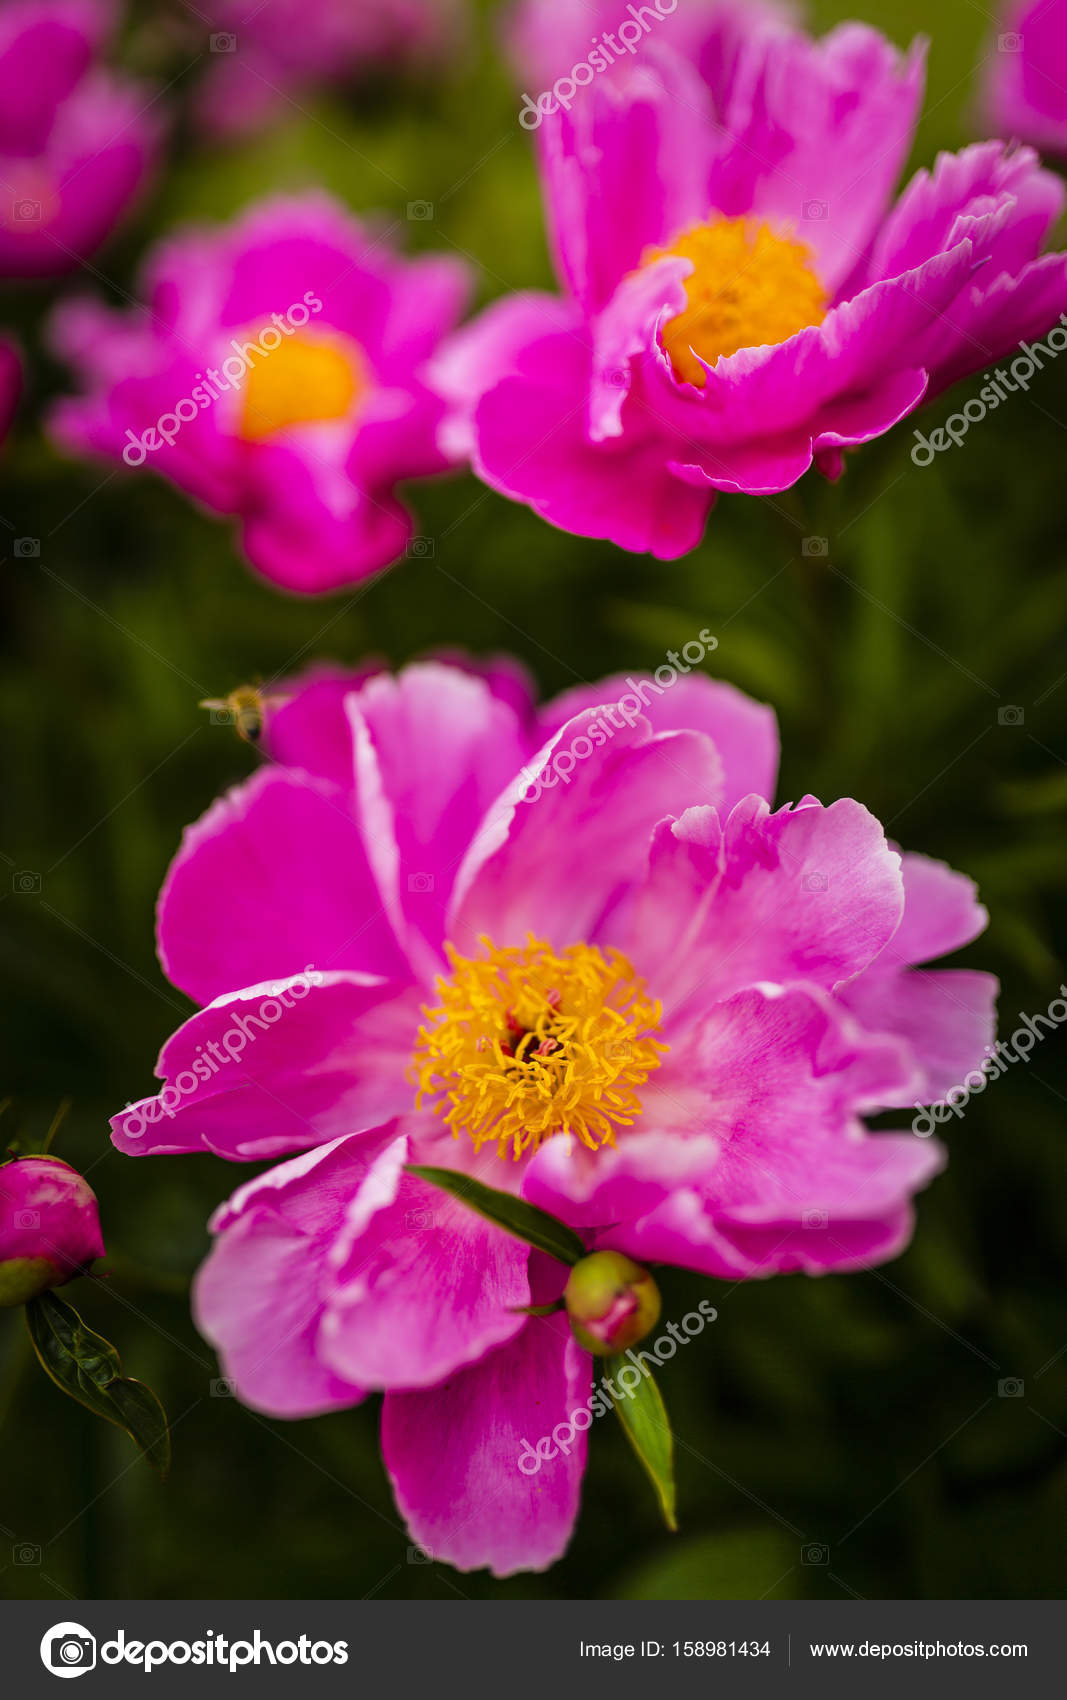 Pianese Flowers Big Blooming Pink Peony Flowers In Spring Garden Stock Photo